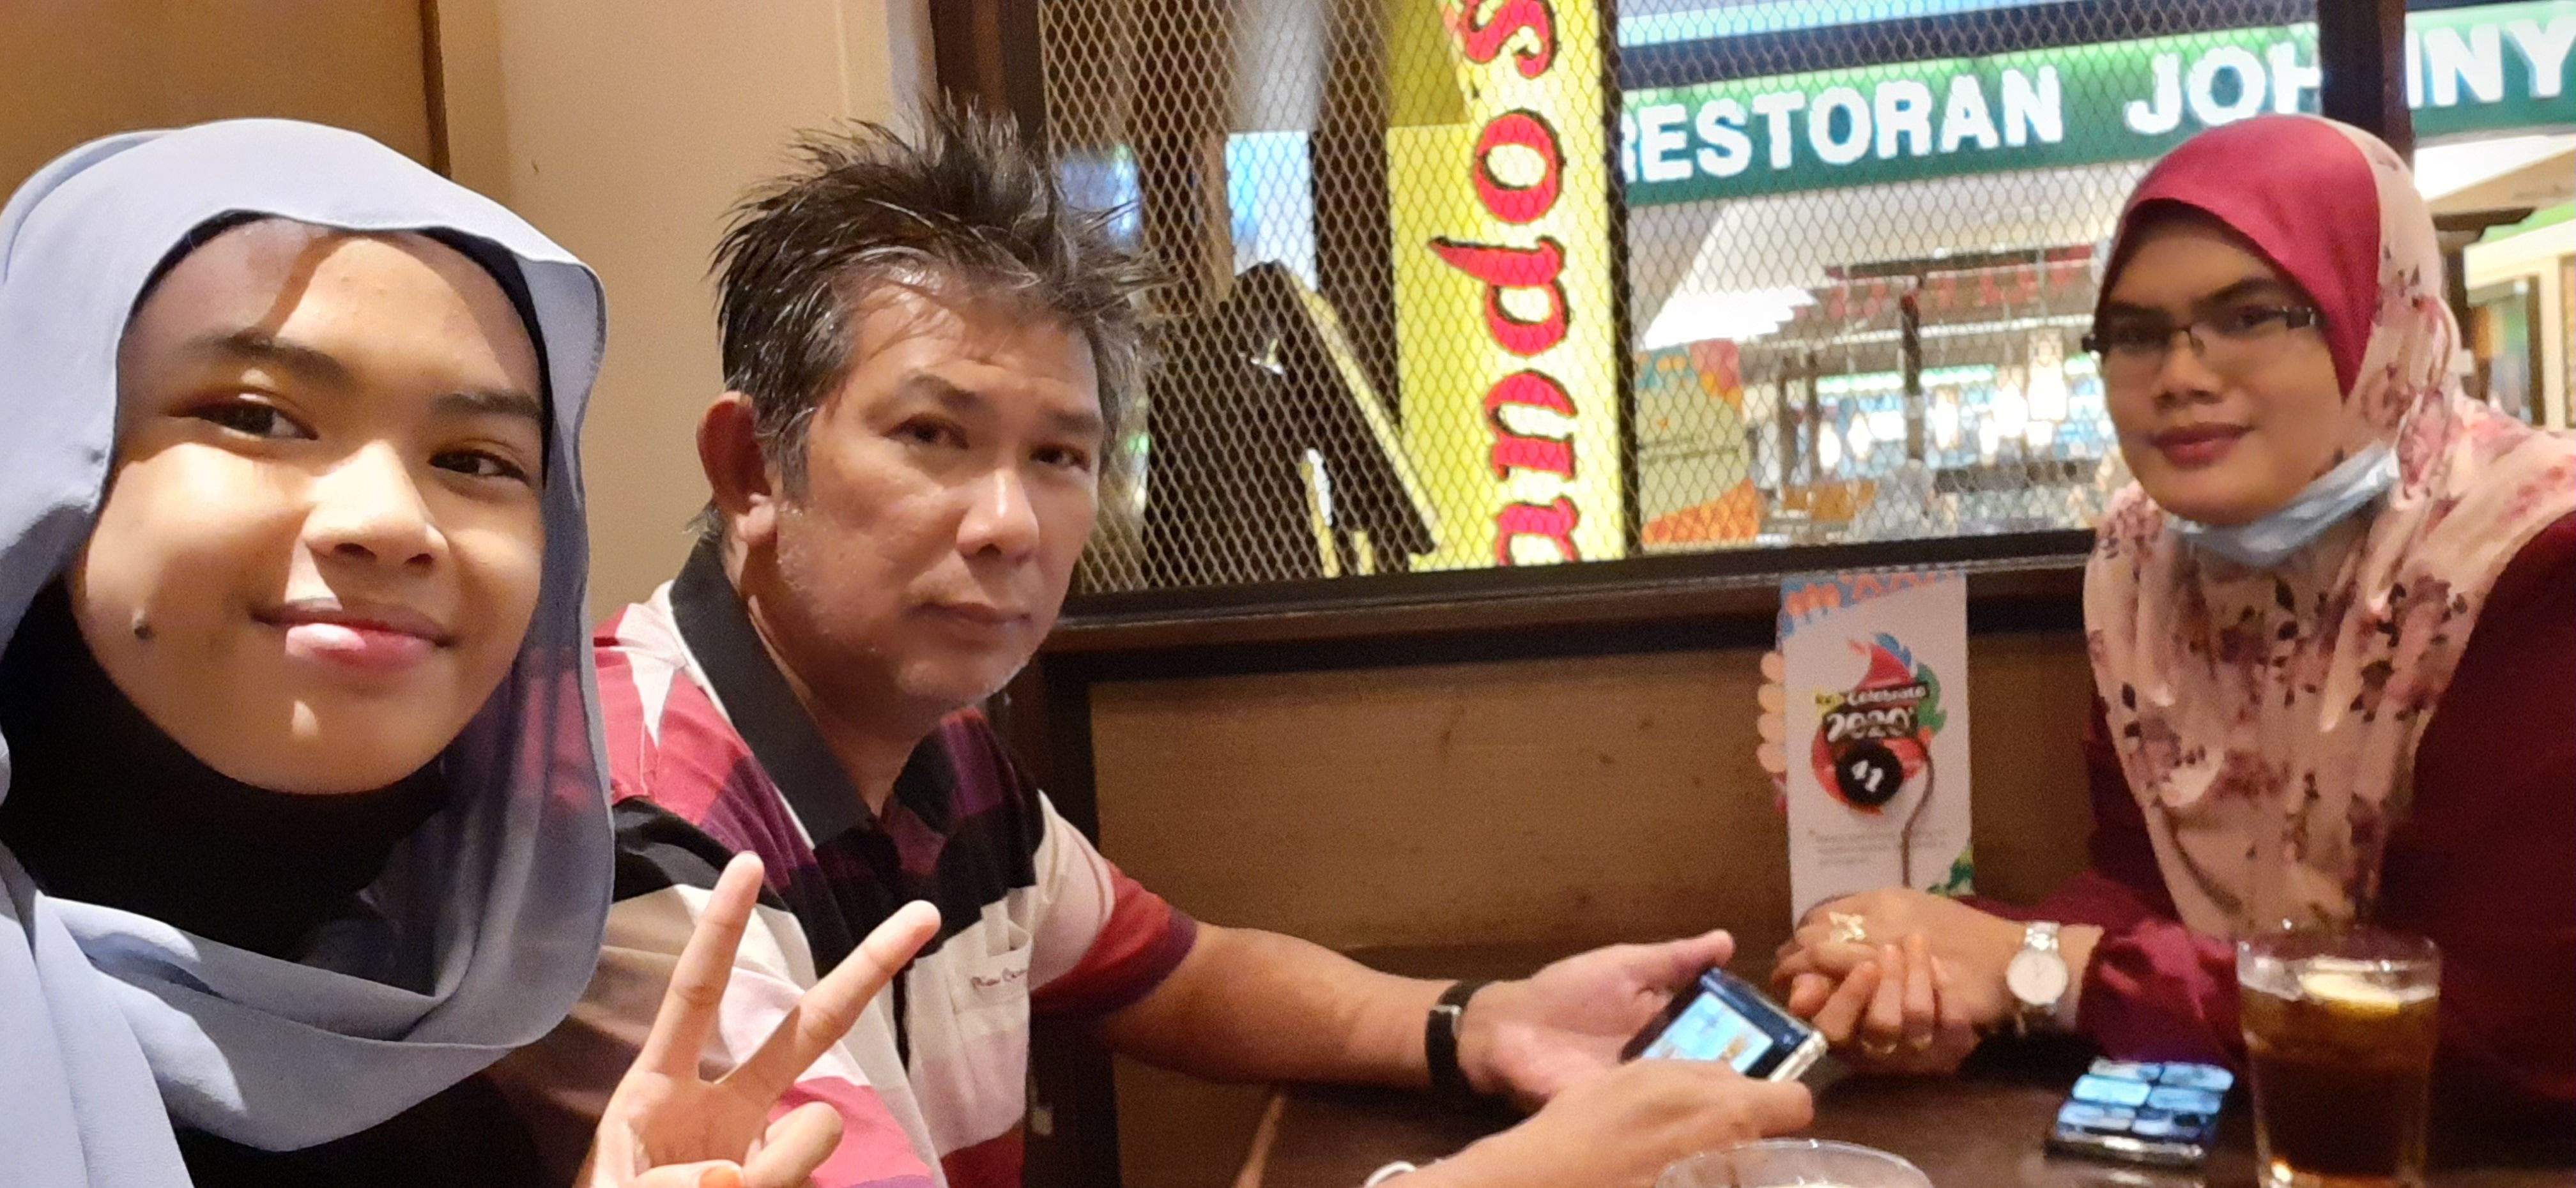 Kamaruzaman bin Hassan shares a meal with his family at Nando's. He has greying hair and a youthful face.